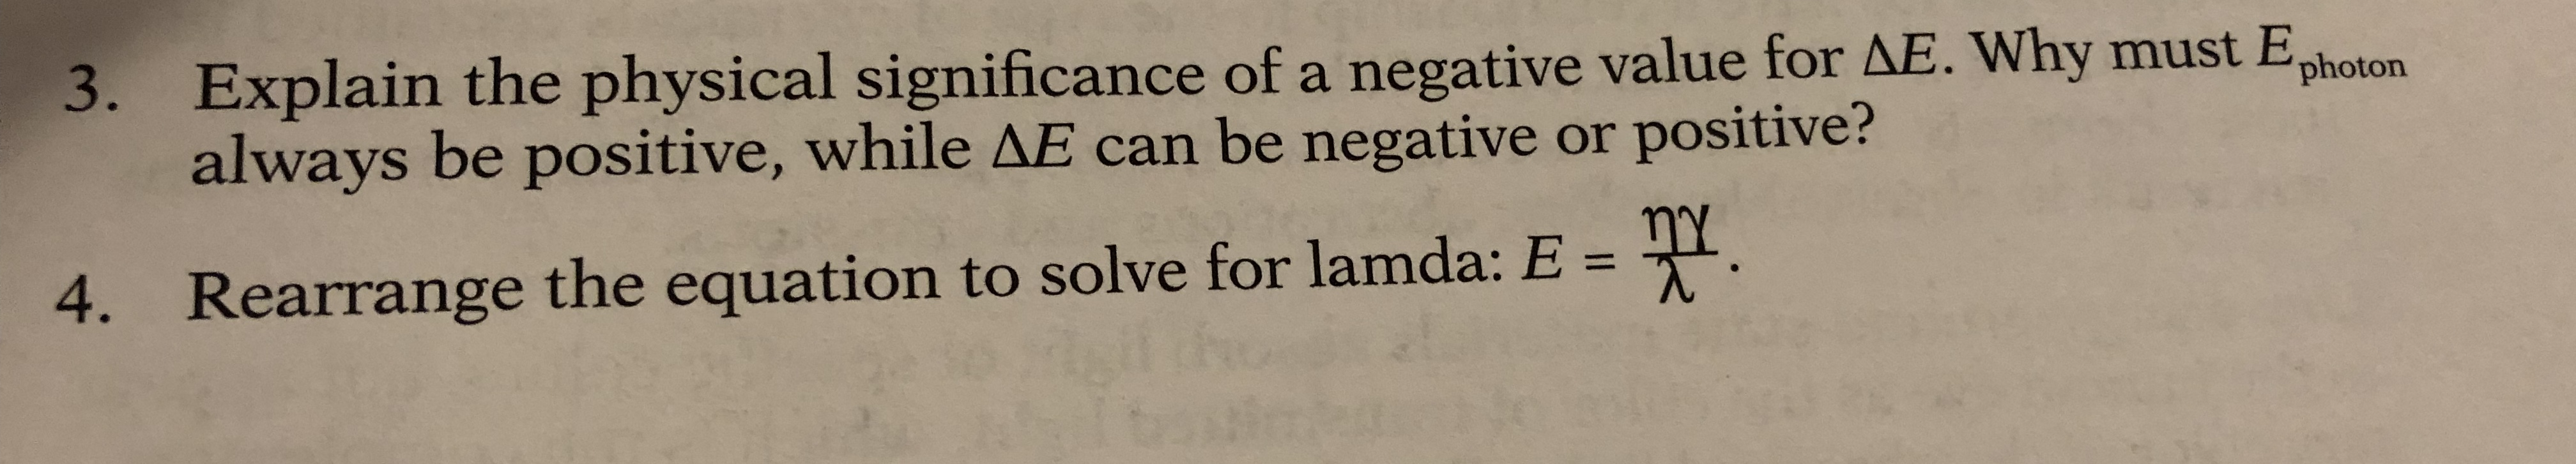 Explain the physical significance of a negative value for AE. always be positive, while AE can be negative or positive? 3. Why must Ephoton 4. Rearrange the equation to solve for lamda: E